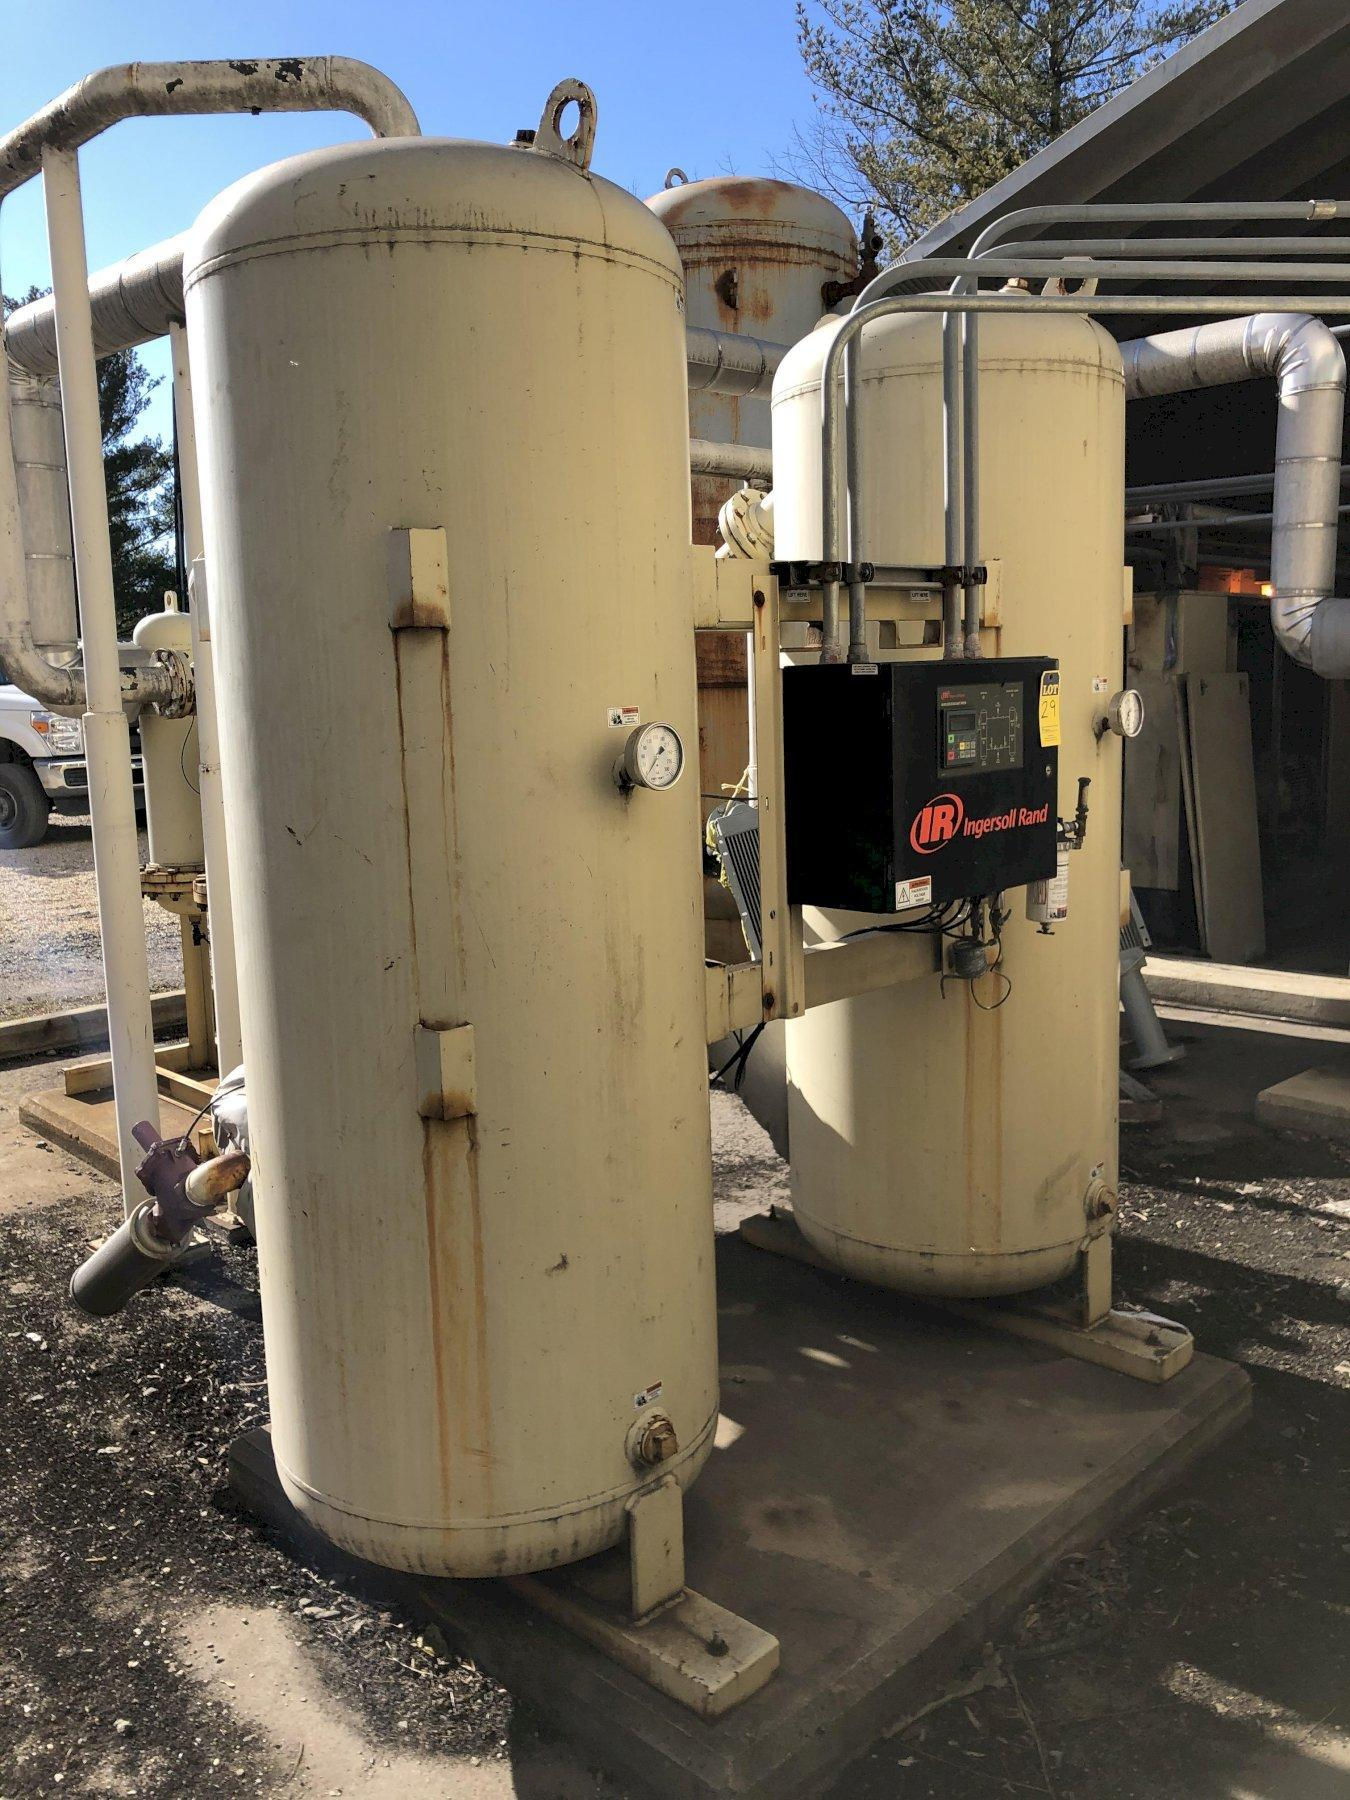 Ingersol Rand model hl18001heoas desiccant air dryer s/n 298397 rated at 1800 cfm